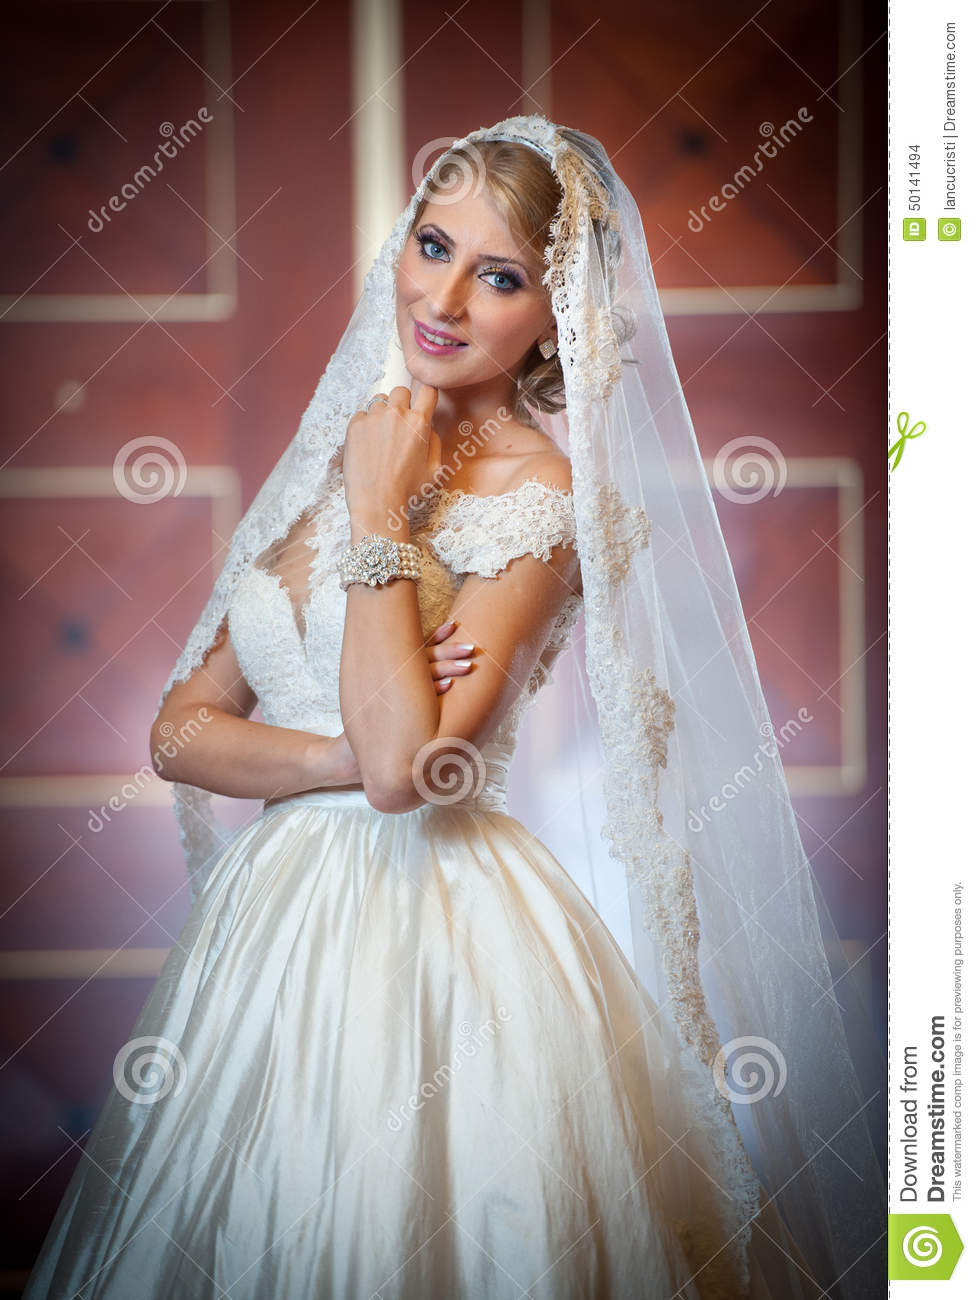 Can young beautiful bride preparing all